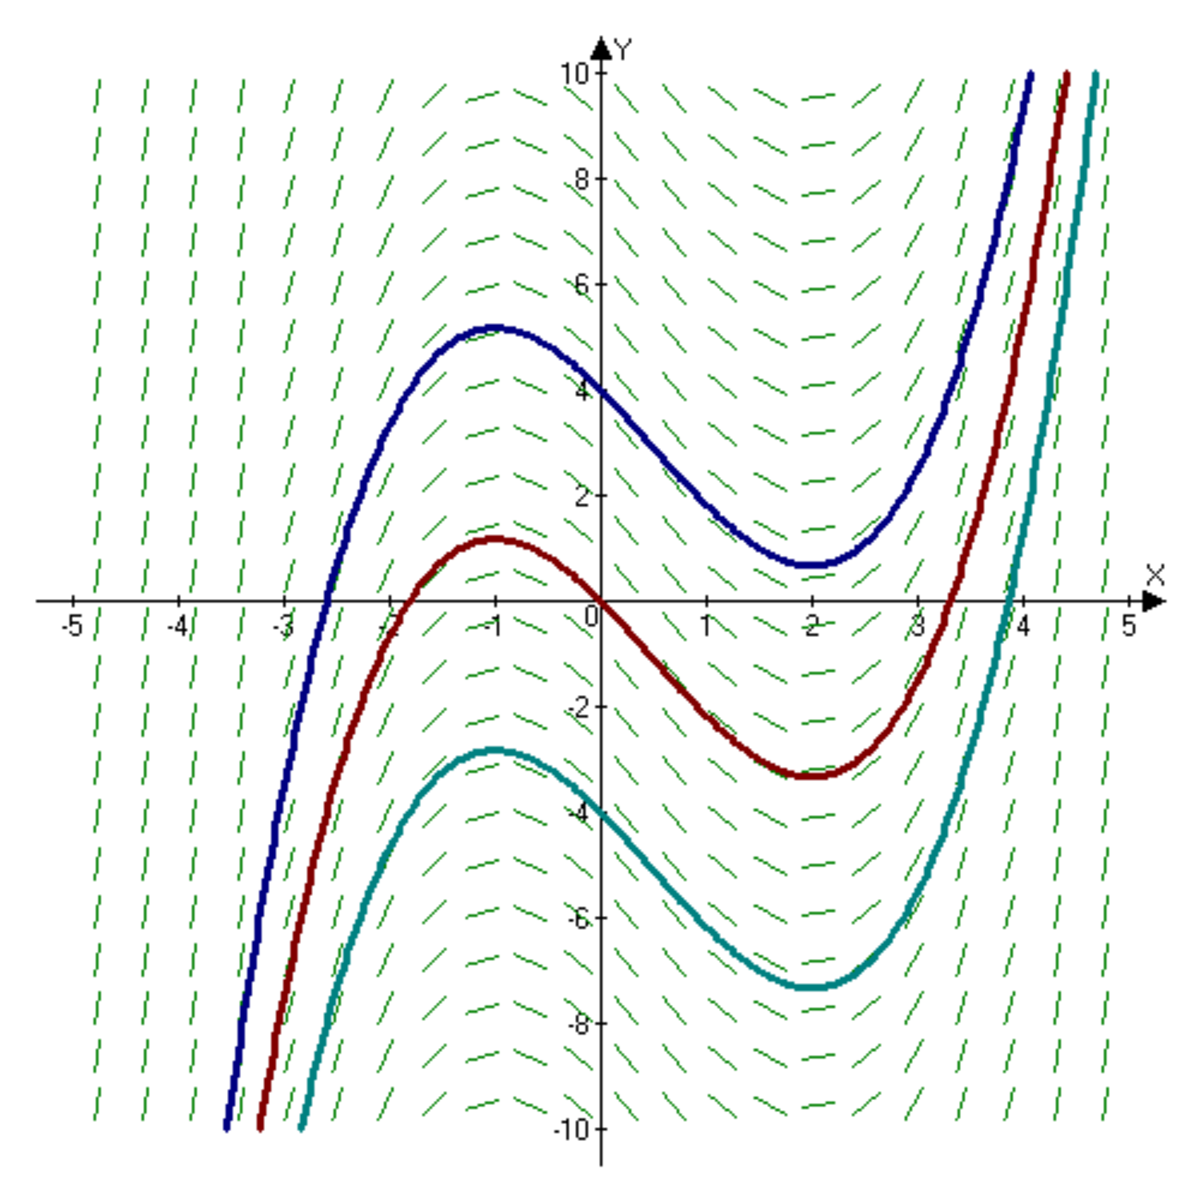 Slope field of a function x^3/3 - x^2/2 - x + c, showing three of the infinite number of functions that can be produced by varying the constant c. The derivative of all the functions is the same.